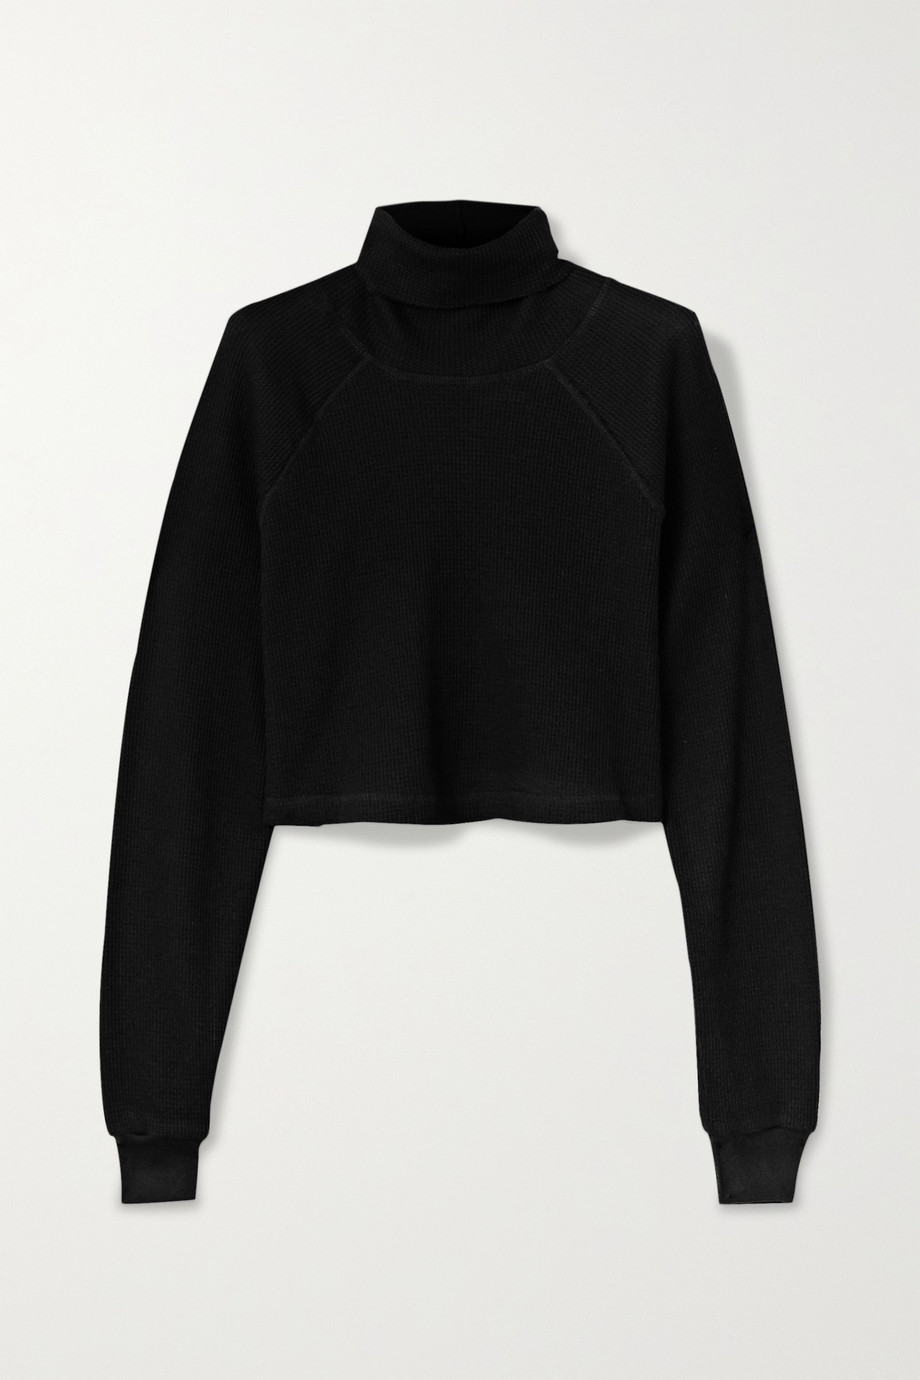 The Range Cropped waffle-knit stretch-cotton turtleneck top